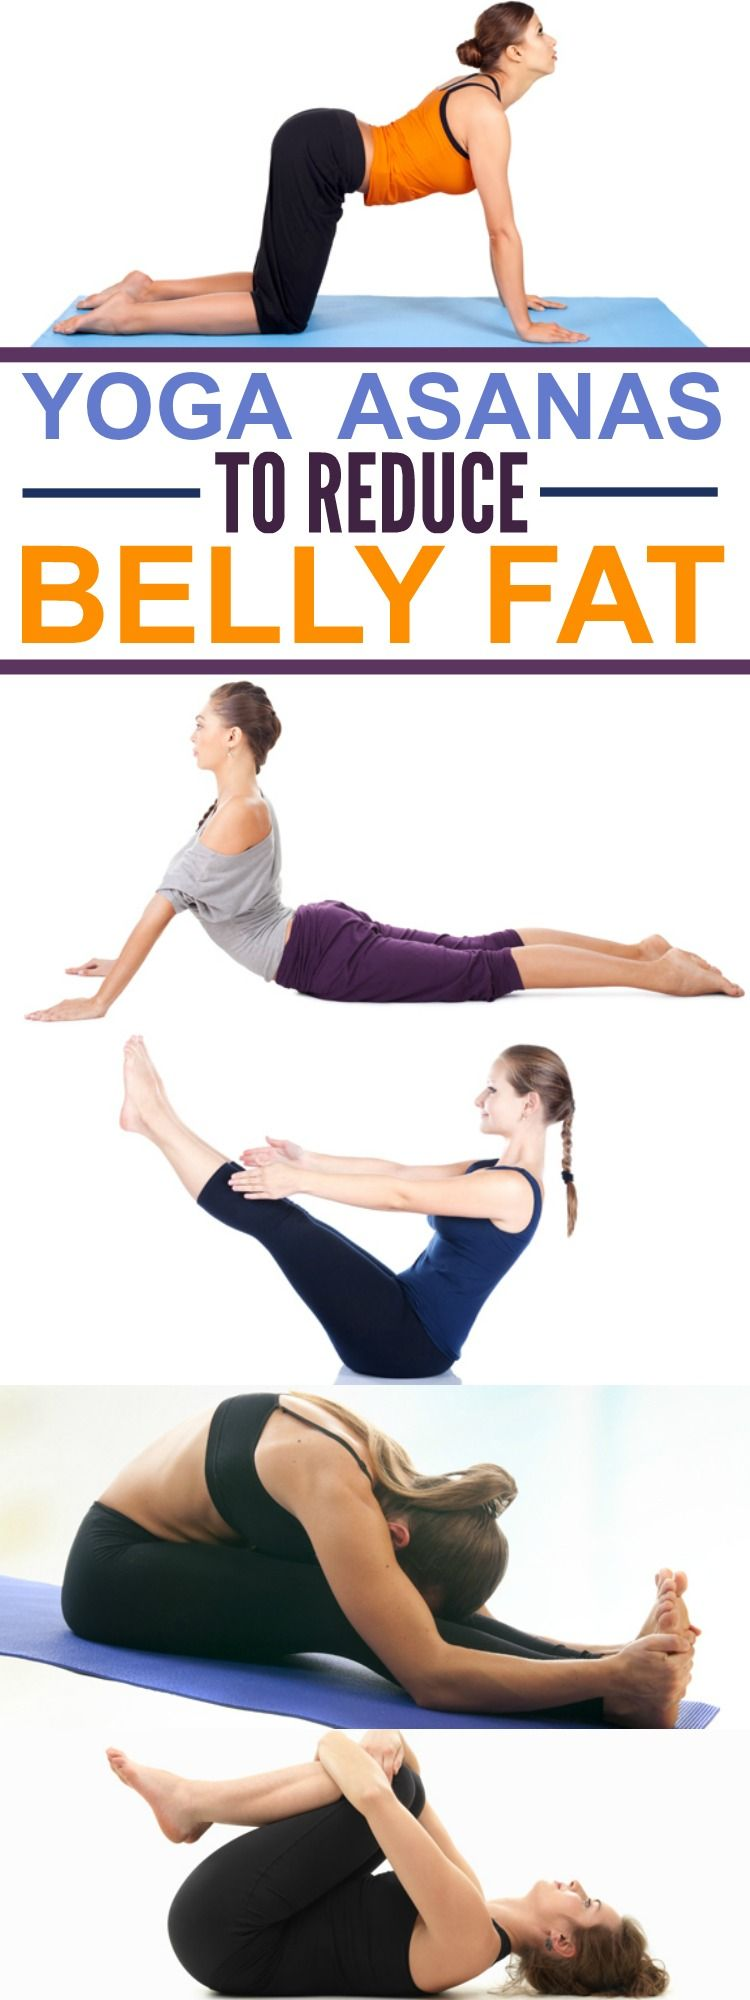 Yoga poses for reducing belly fat